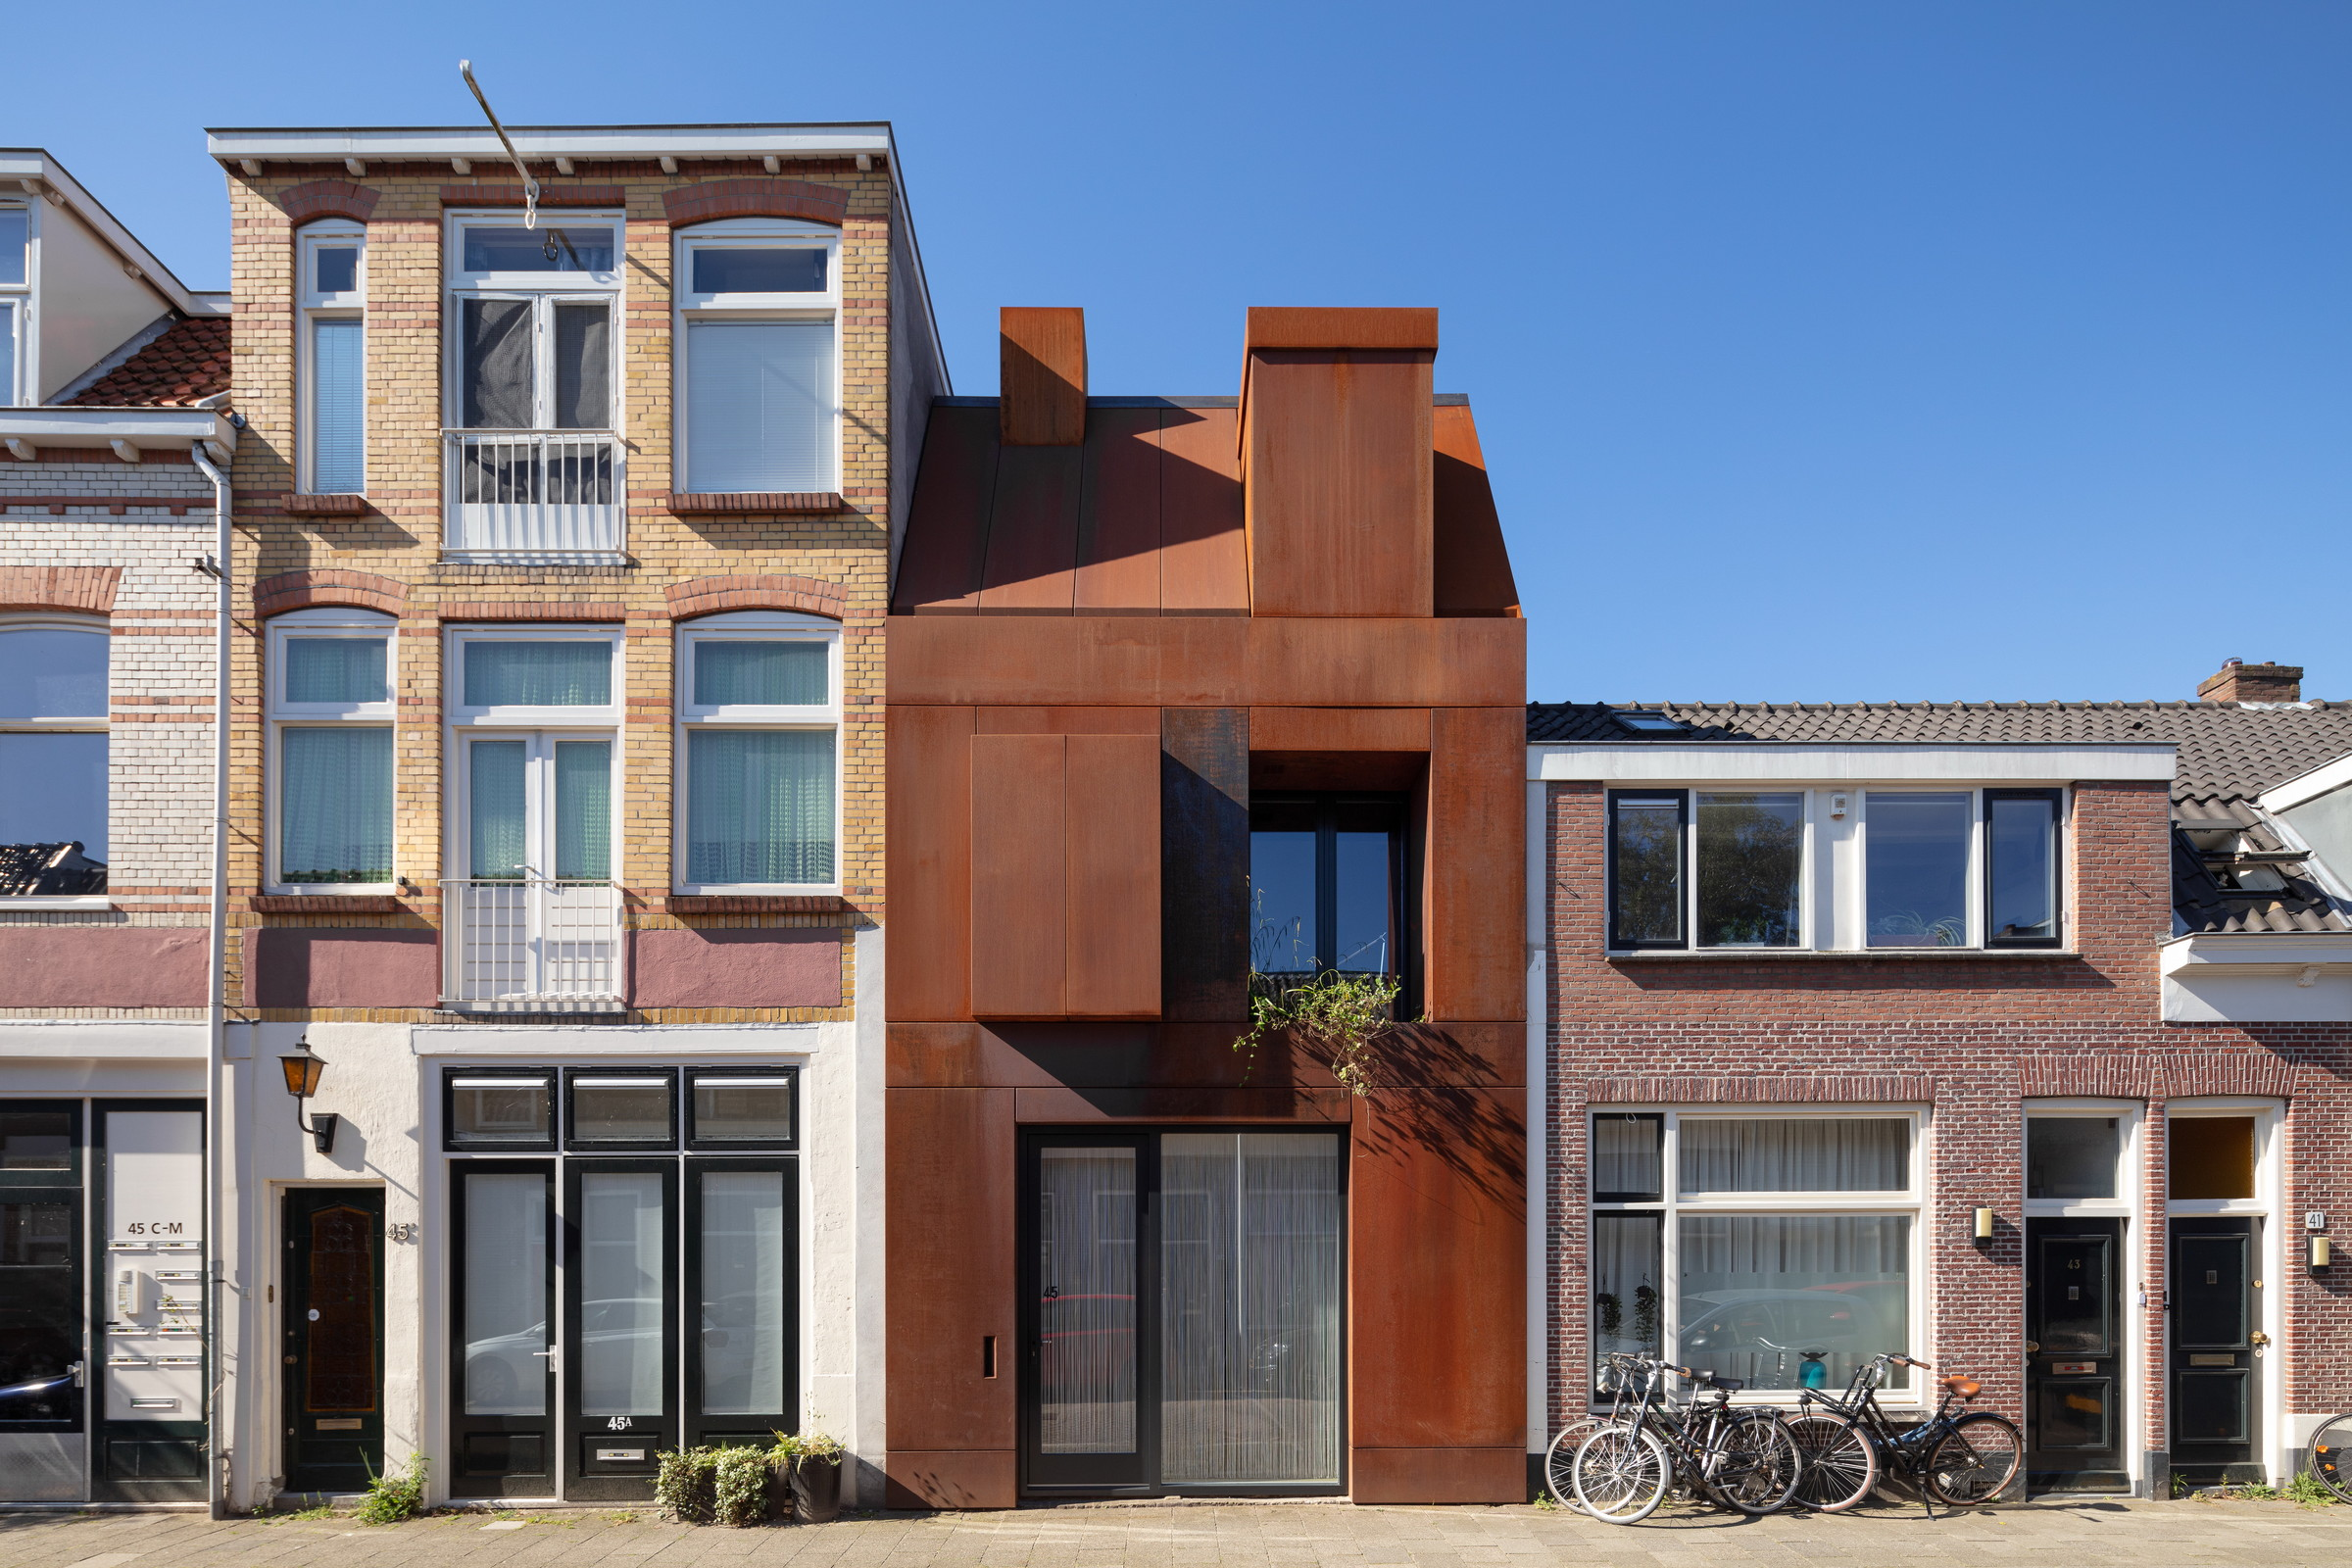 109-Zecc_Architecten-Utrecht-house-steel-craft.JPG